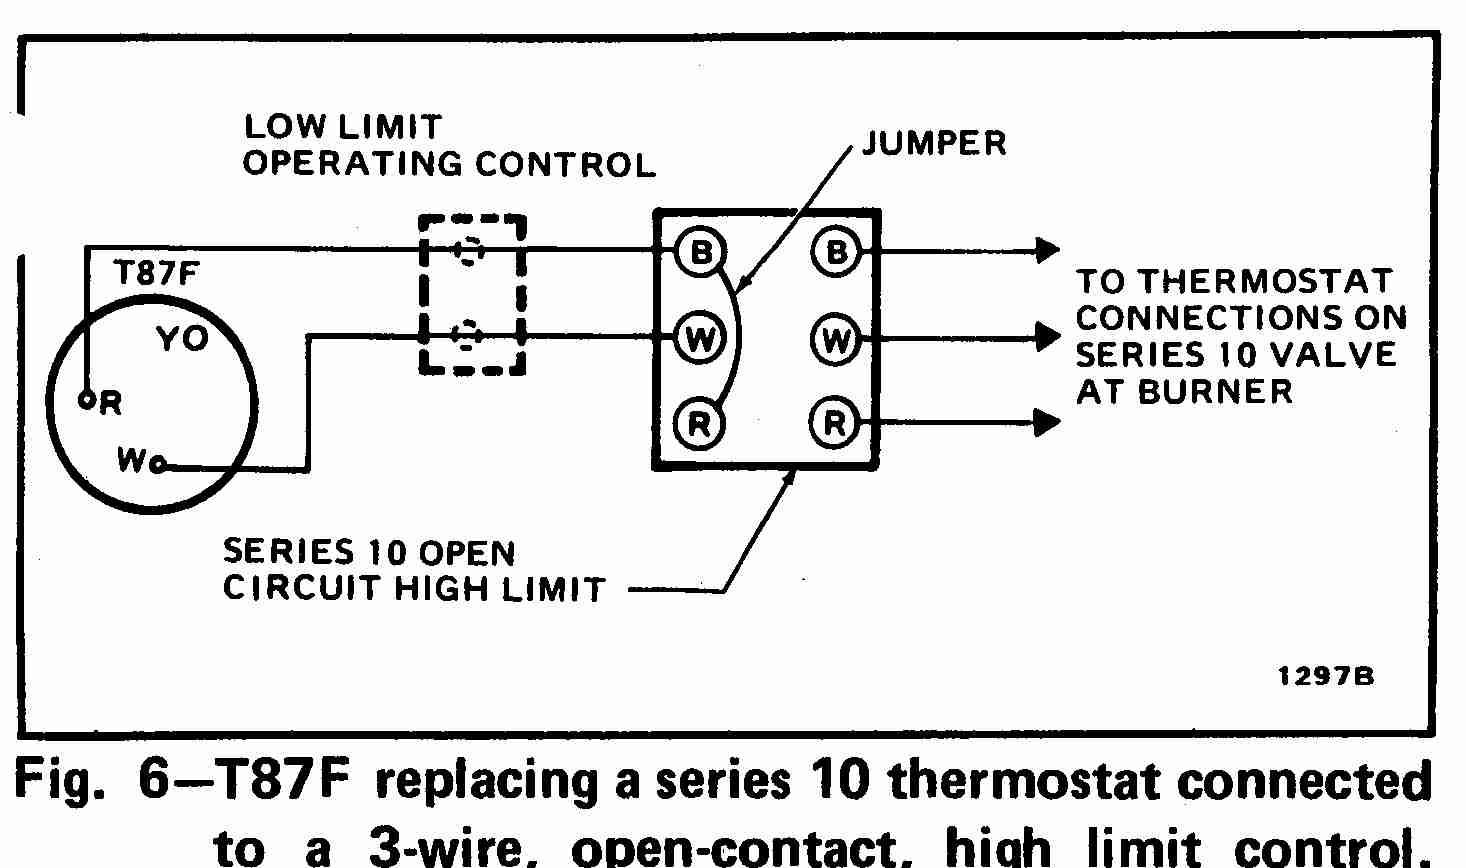 TT_T87F_0002_3WHL_DJF room thermostat wiring diagrams for hvac systems capillary thermostat wiring diagram at crackthecode.co